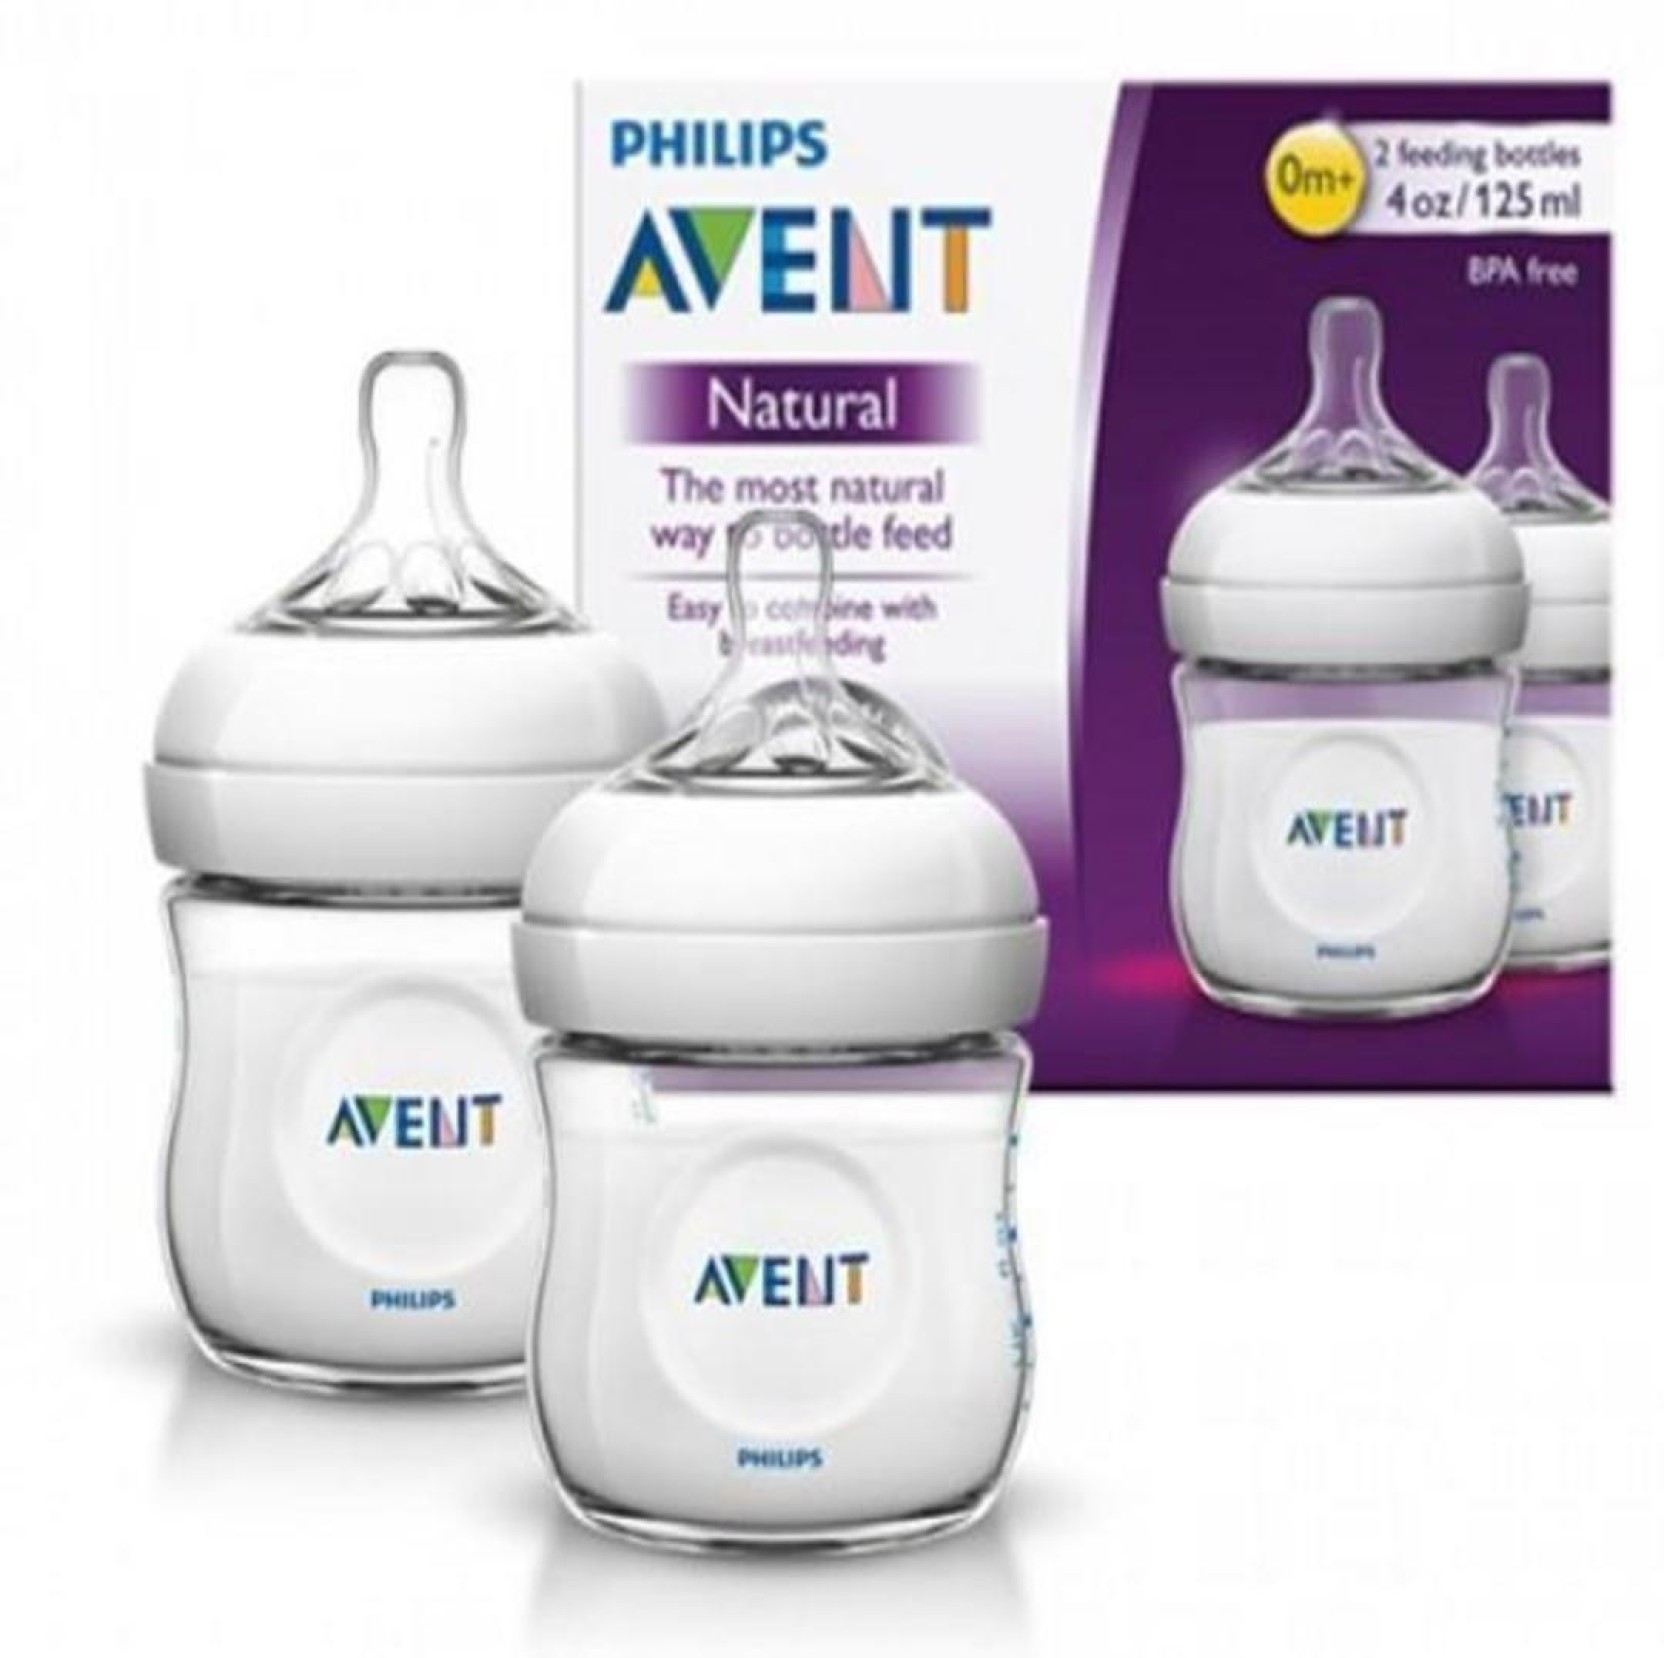 Avent Phillips 125ml Natural Feeding Bottle Pack Of 2 Philips Gift Set Baby Newborn 250 Ml White